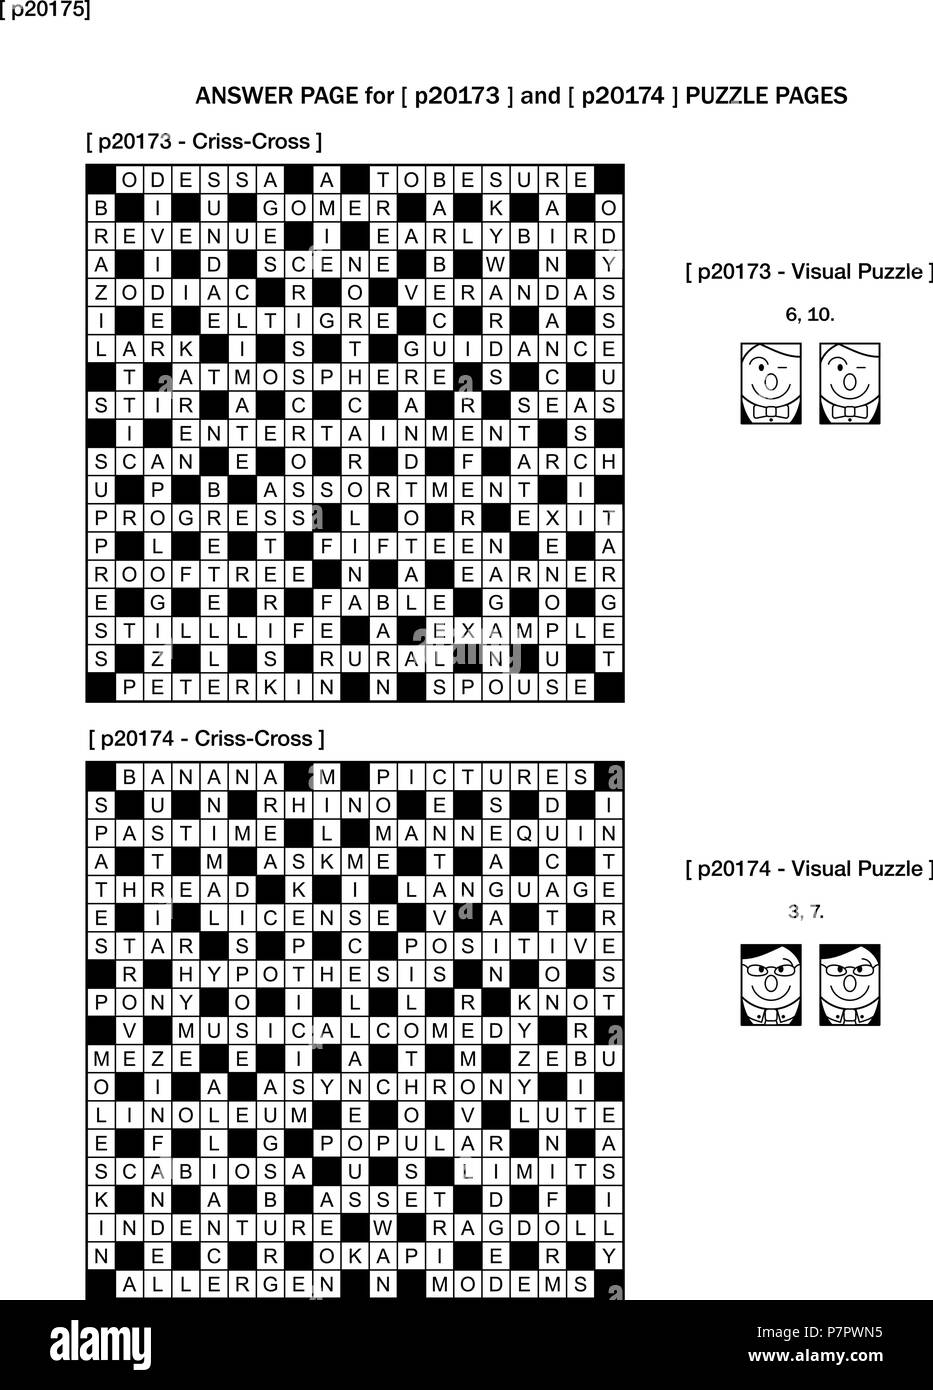 Answer page for previous puzzle pages with two games on each